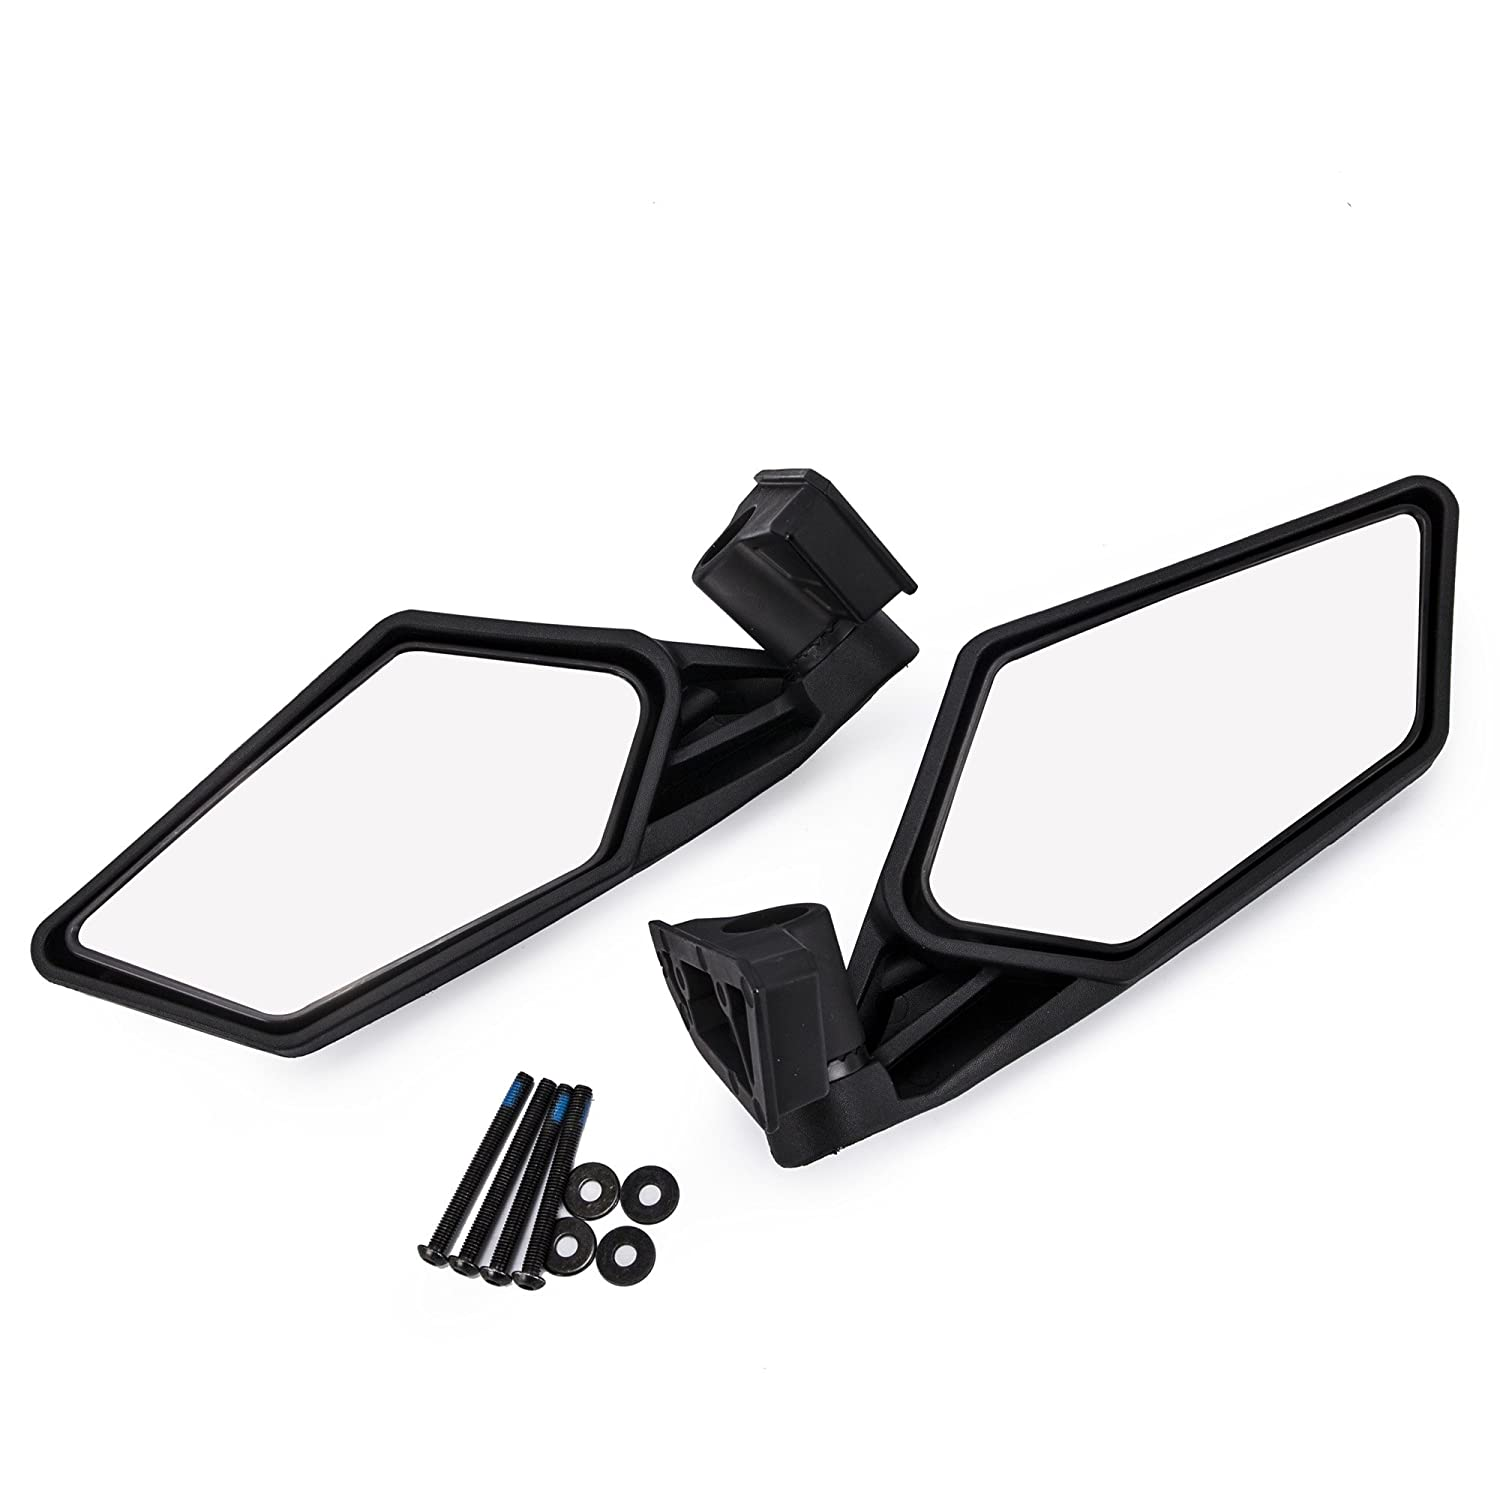 UTV Side Mirror Rear view Mirror Racing Side Mirrors for UTV Polaris RZR Can Am Maverick X3 2017 2018 Suzuki Quadracer 450 2006-2009 Pair of mirror